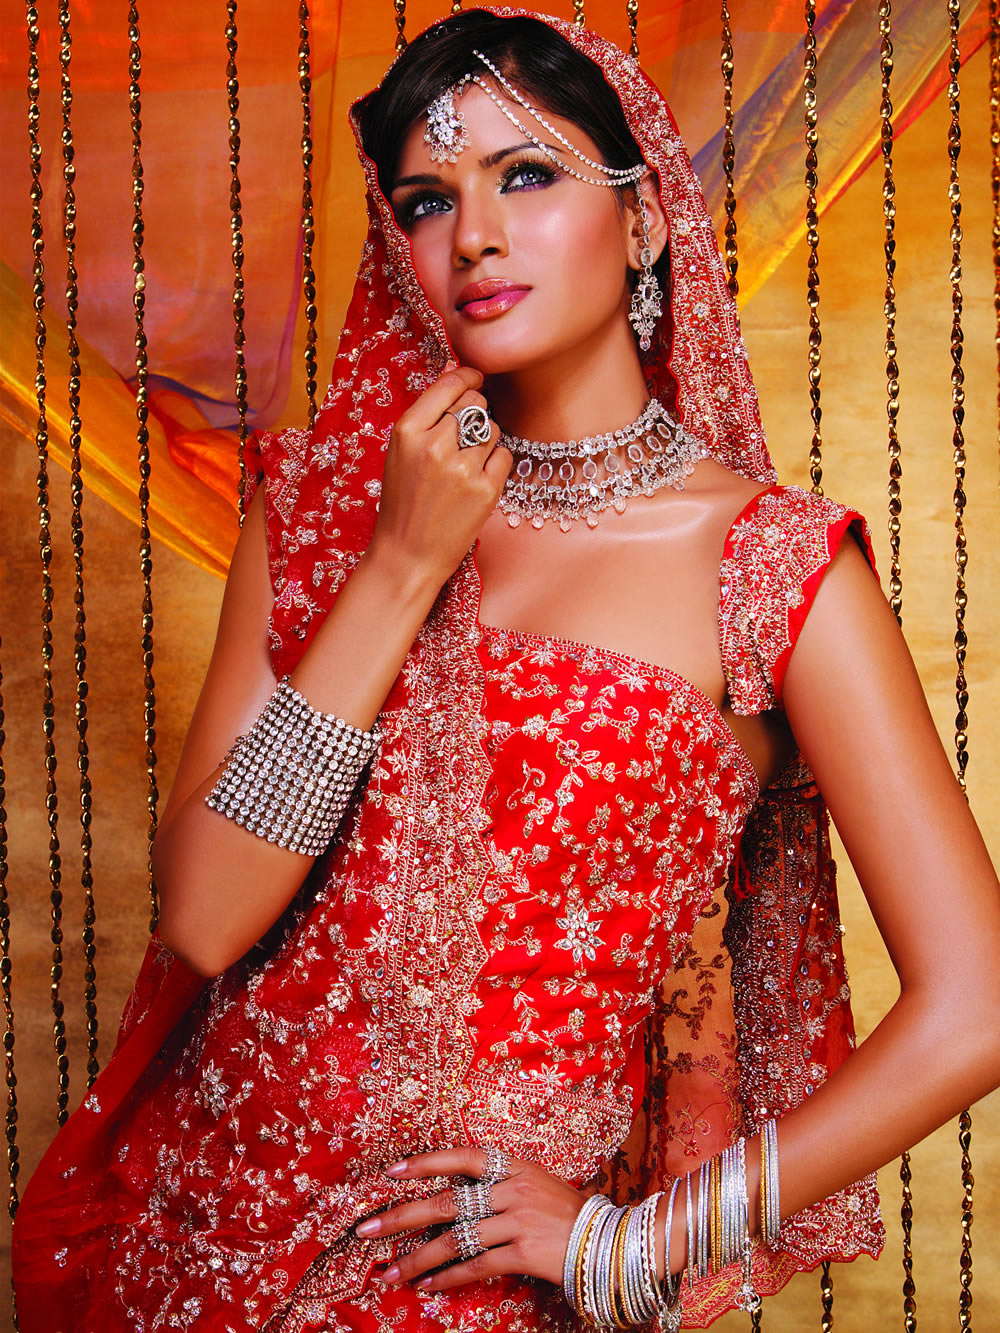 Innovative Most Beautiful Indian Brides Picsin Gorgeous Dresses The Genuine